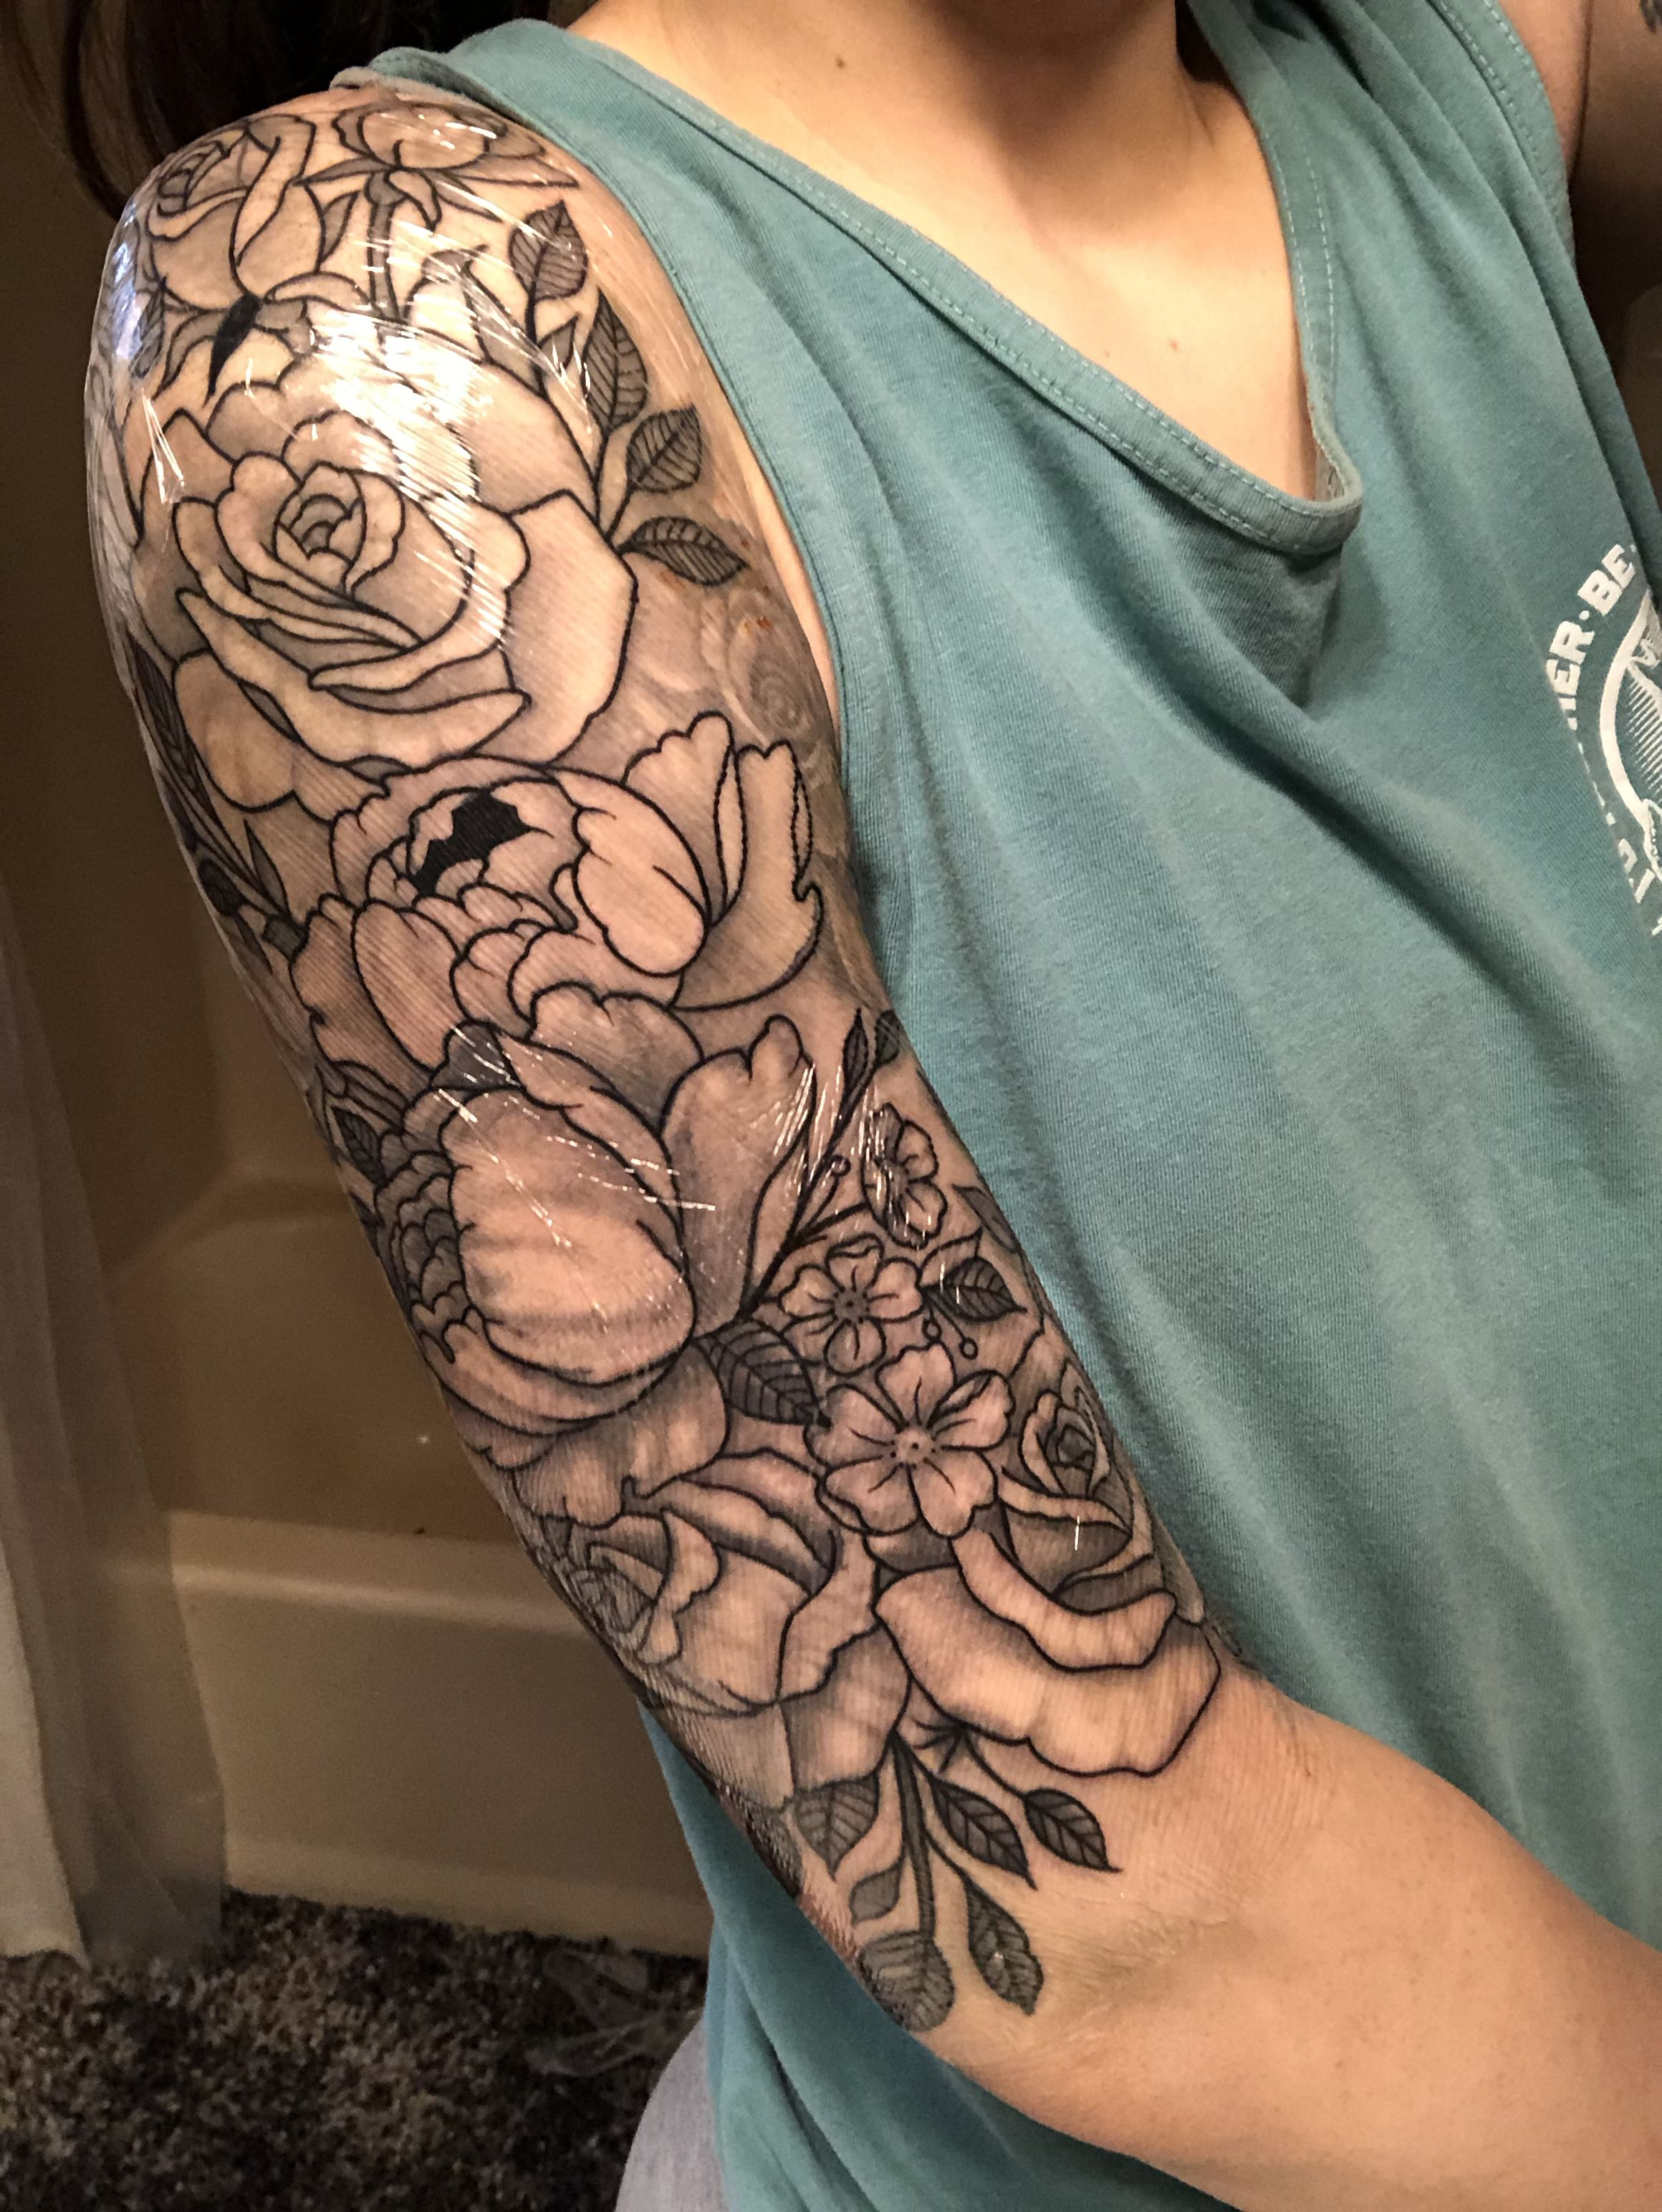 Love The Size And Coloring | Tattoos | Tattoos, Sleeve